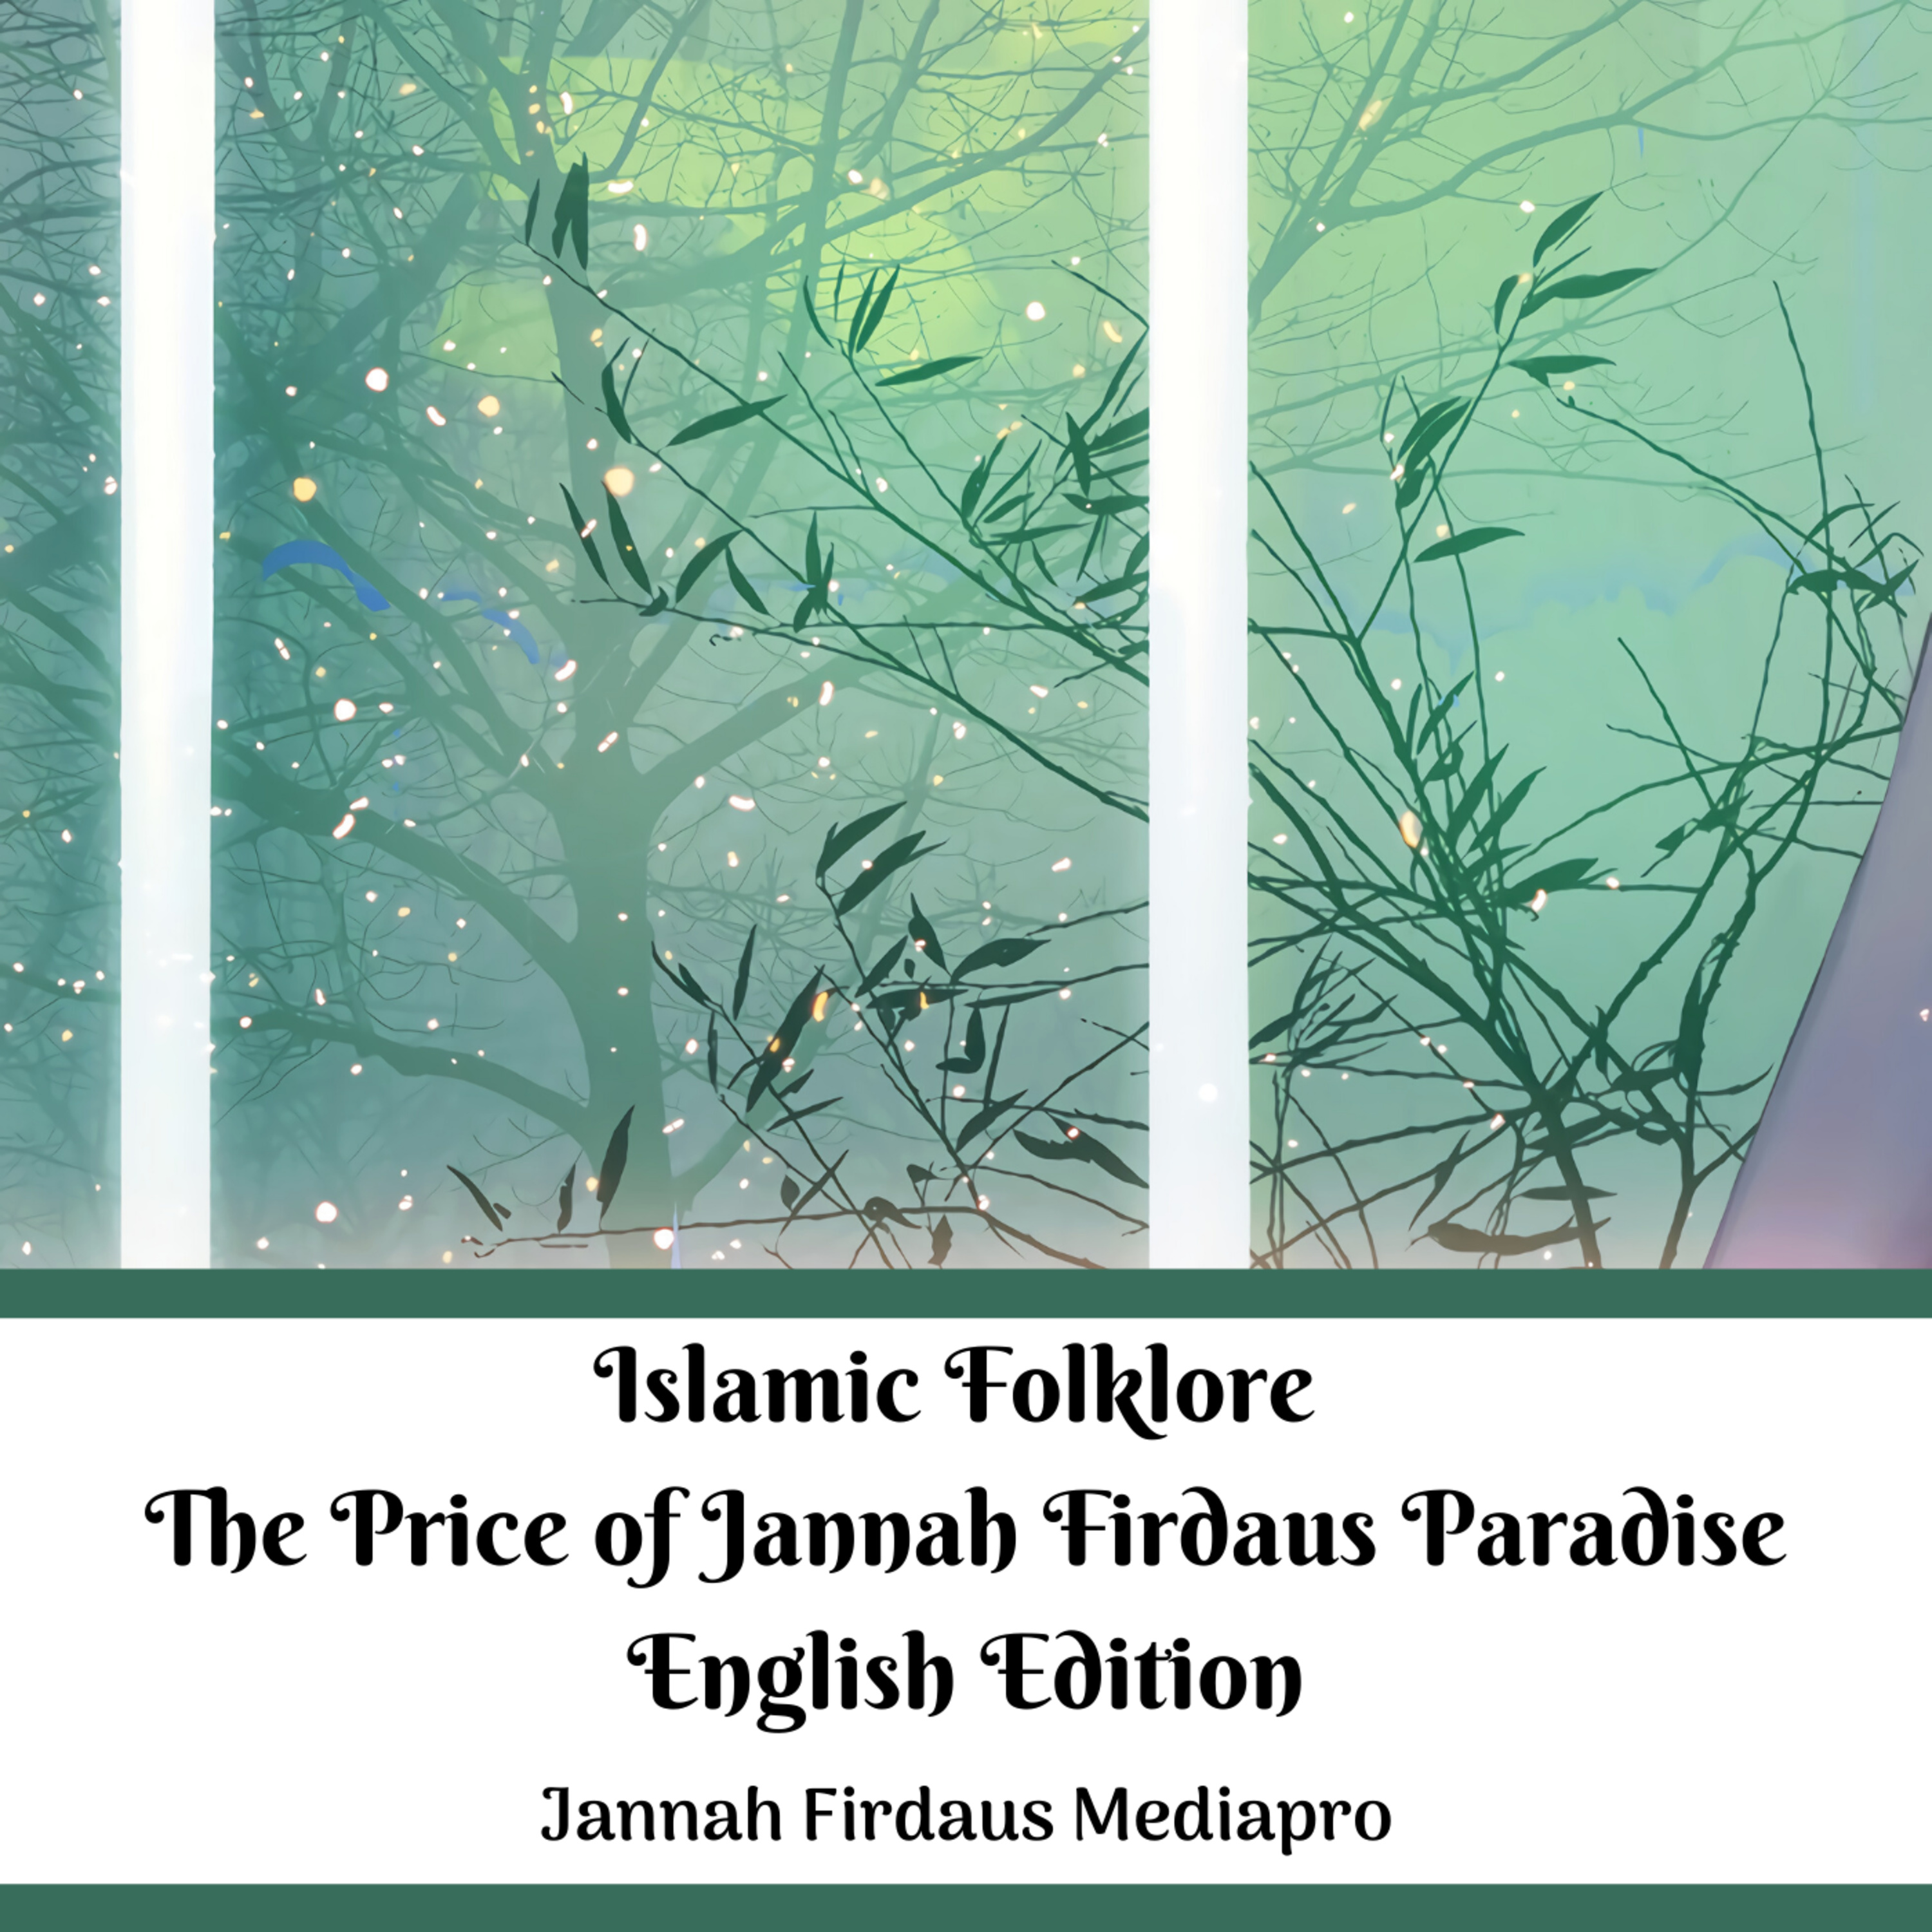 Islamic Folklore The Price of Jannah Firdaus Paradise English Edition